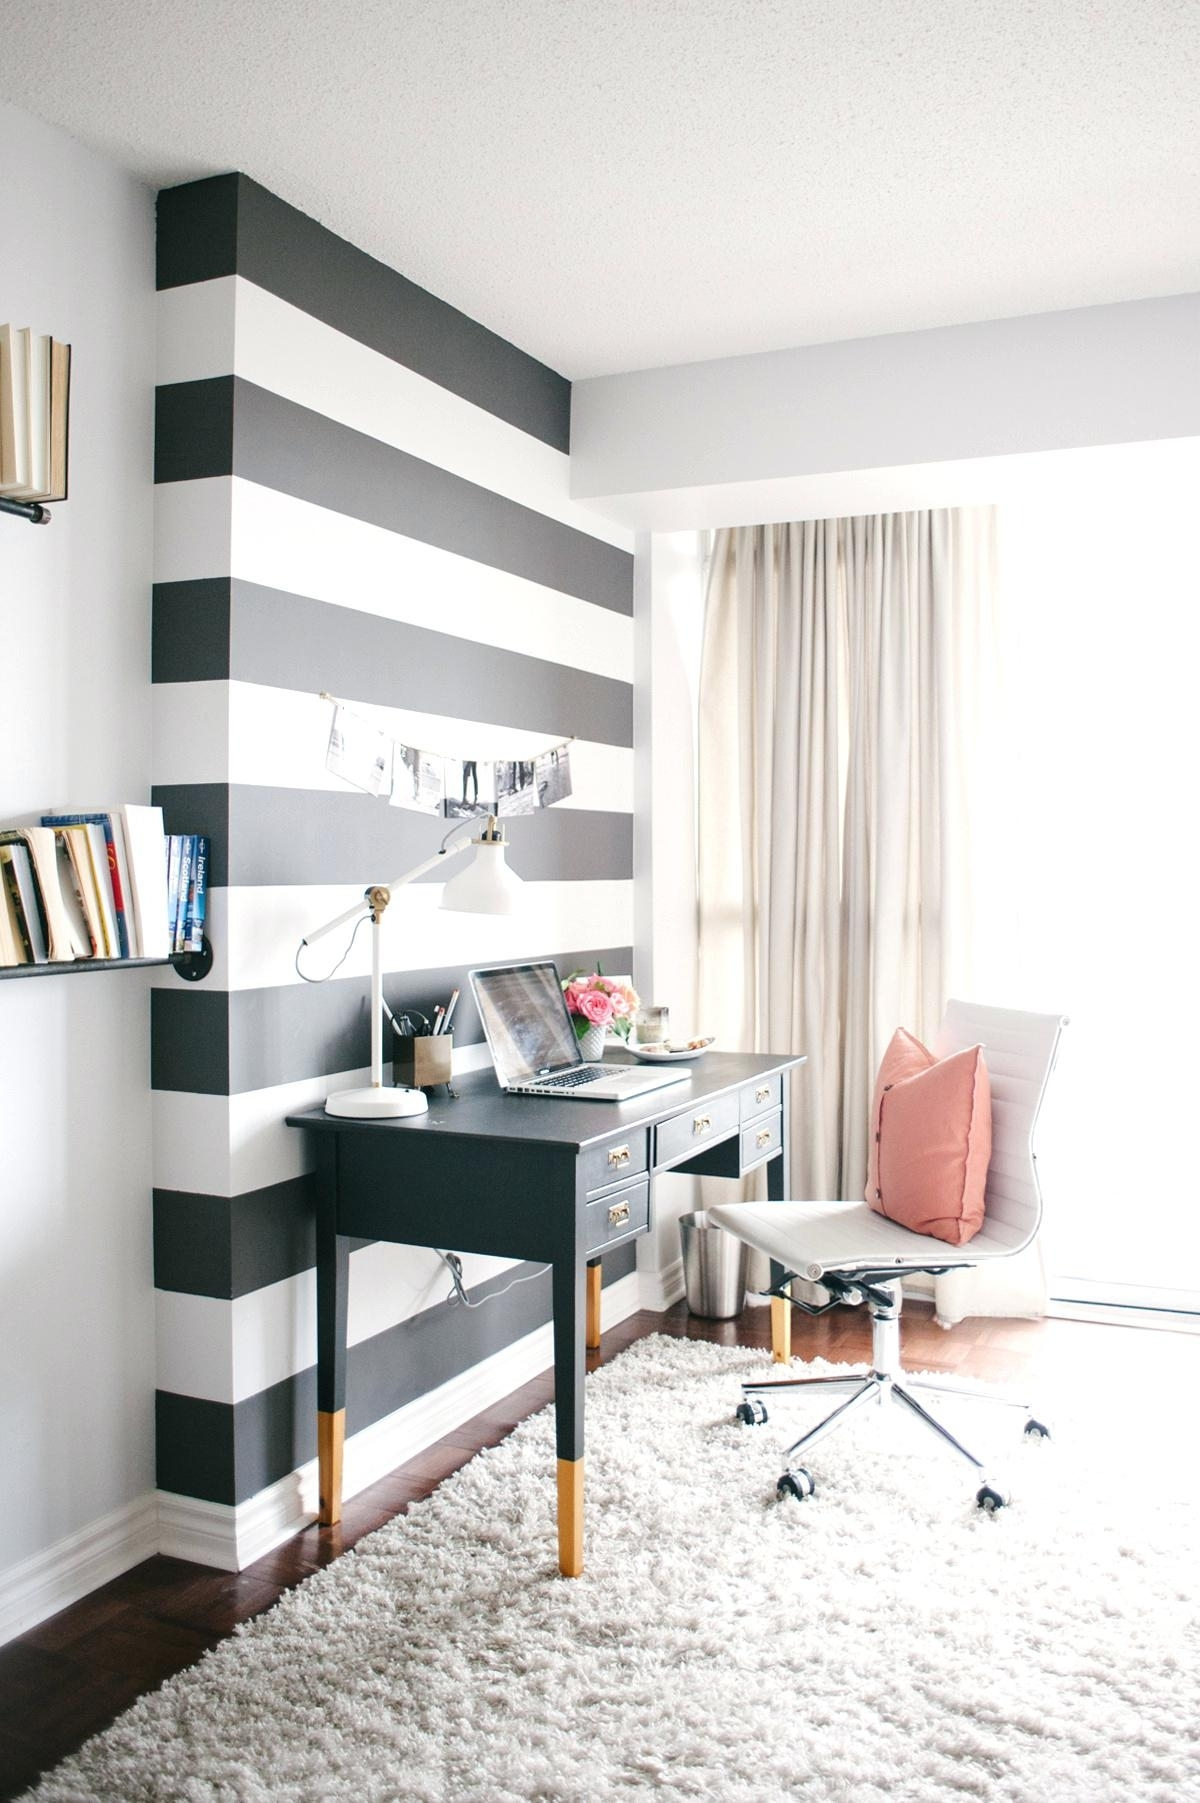 Striped Wall Decal Social Hour Striped Walls Walls And Wall Inside Most Up To Date Wall Accent Decals (View 11 of 15)